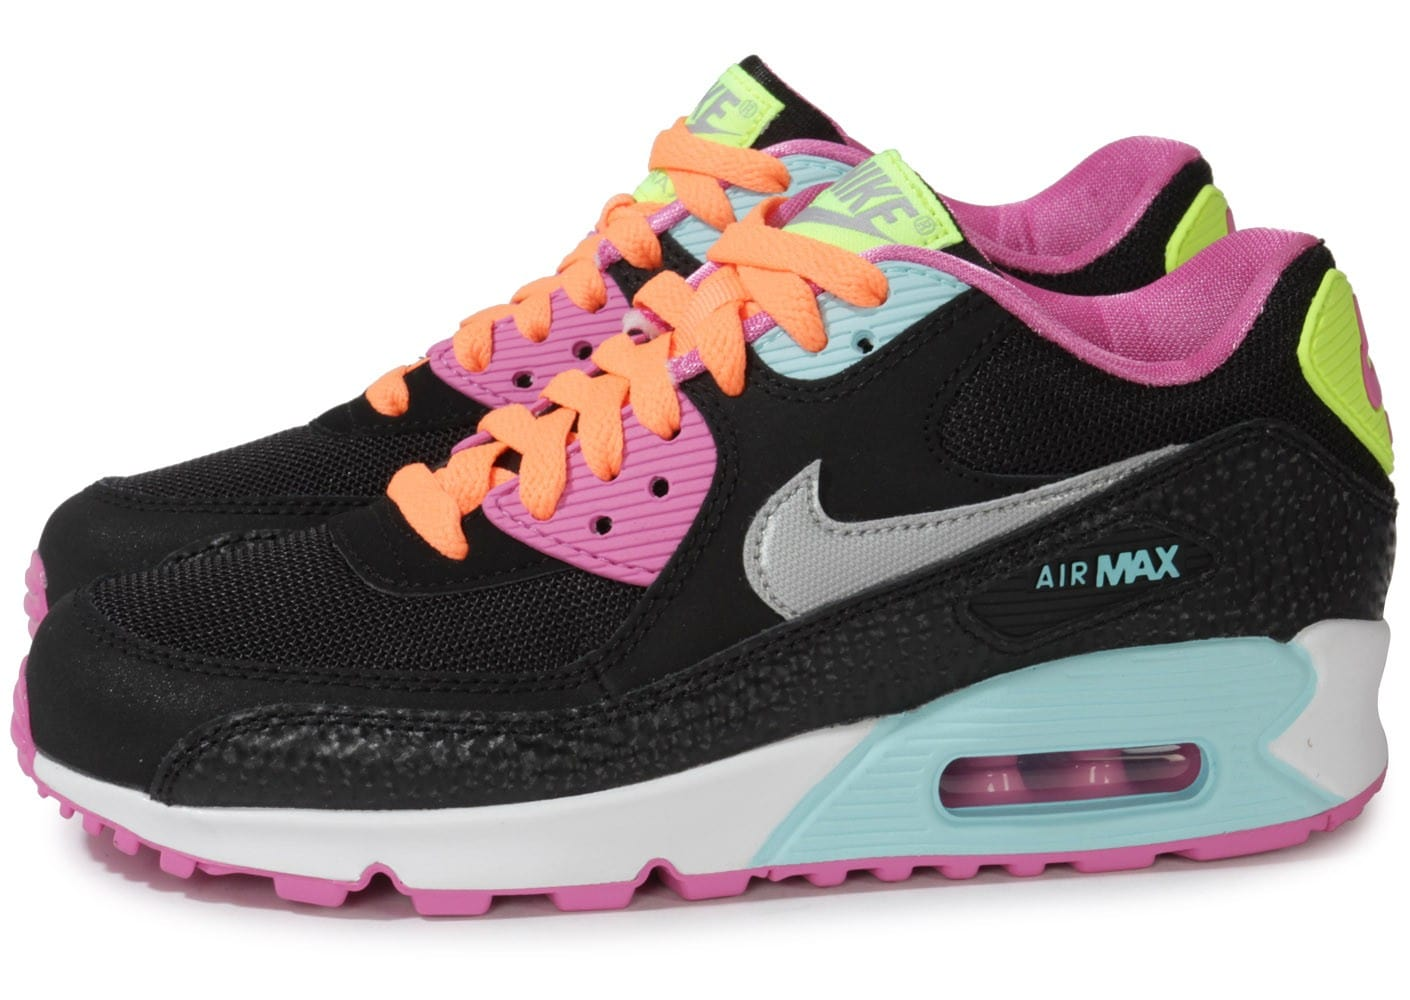 nike air max 90 junior noire et rose chaussures chaussures chausport. Black Bedroom Furniture Sets. Home Design Ideas